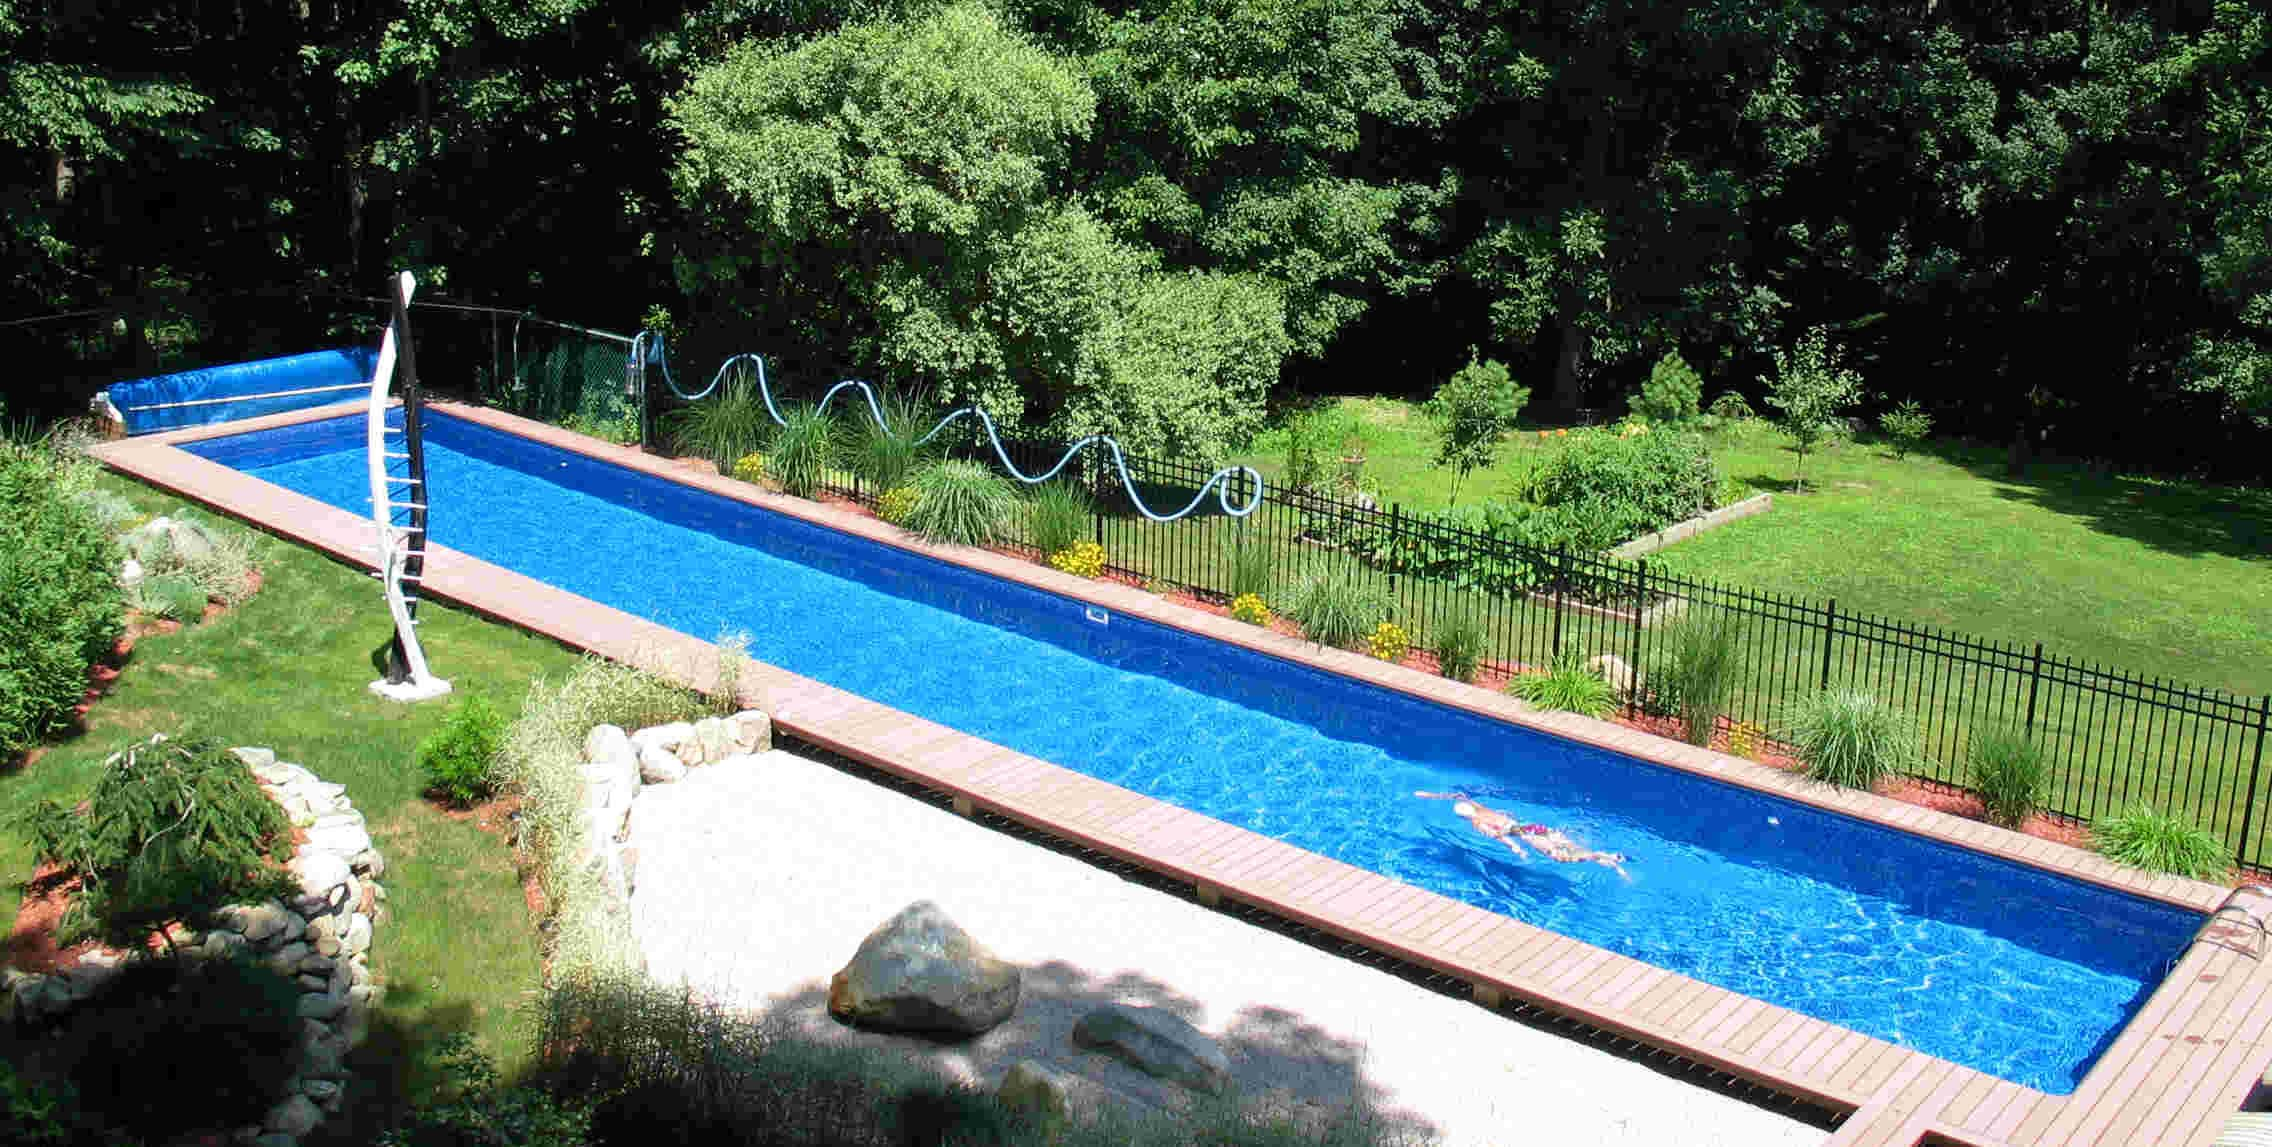 diy inground swimming pool backyard design ideas